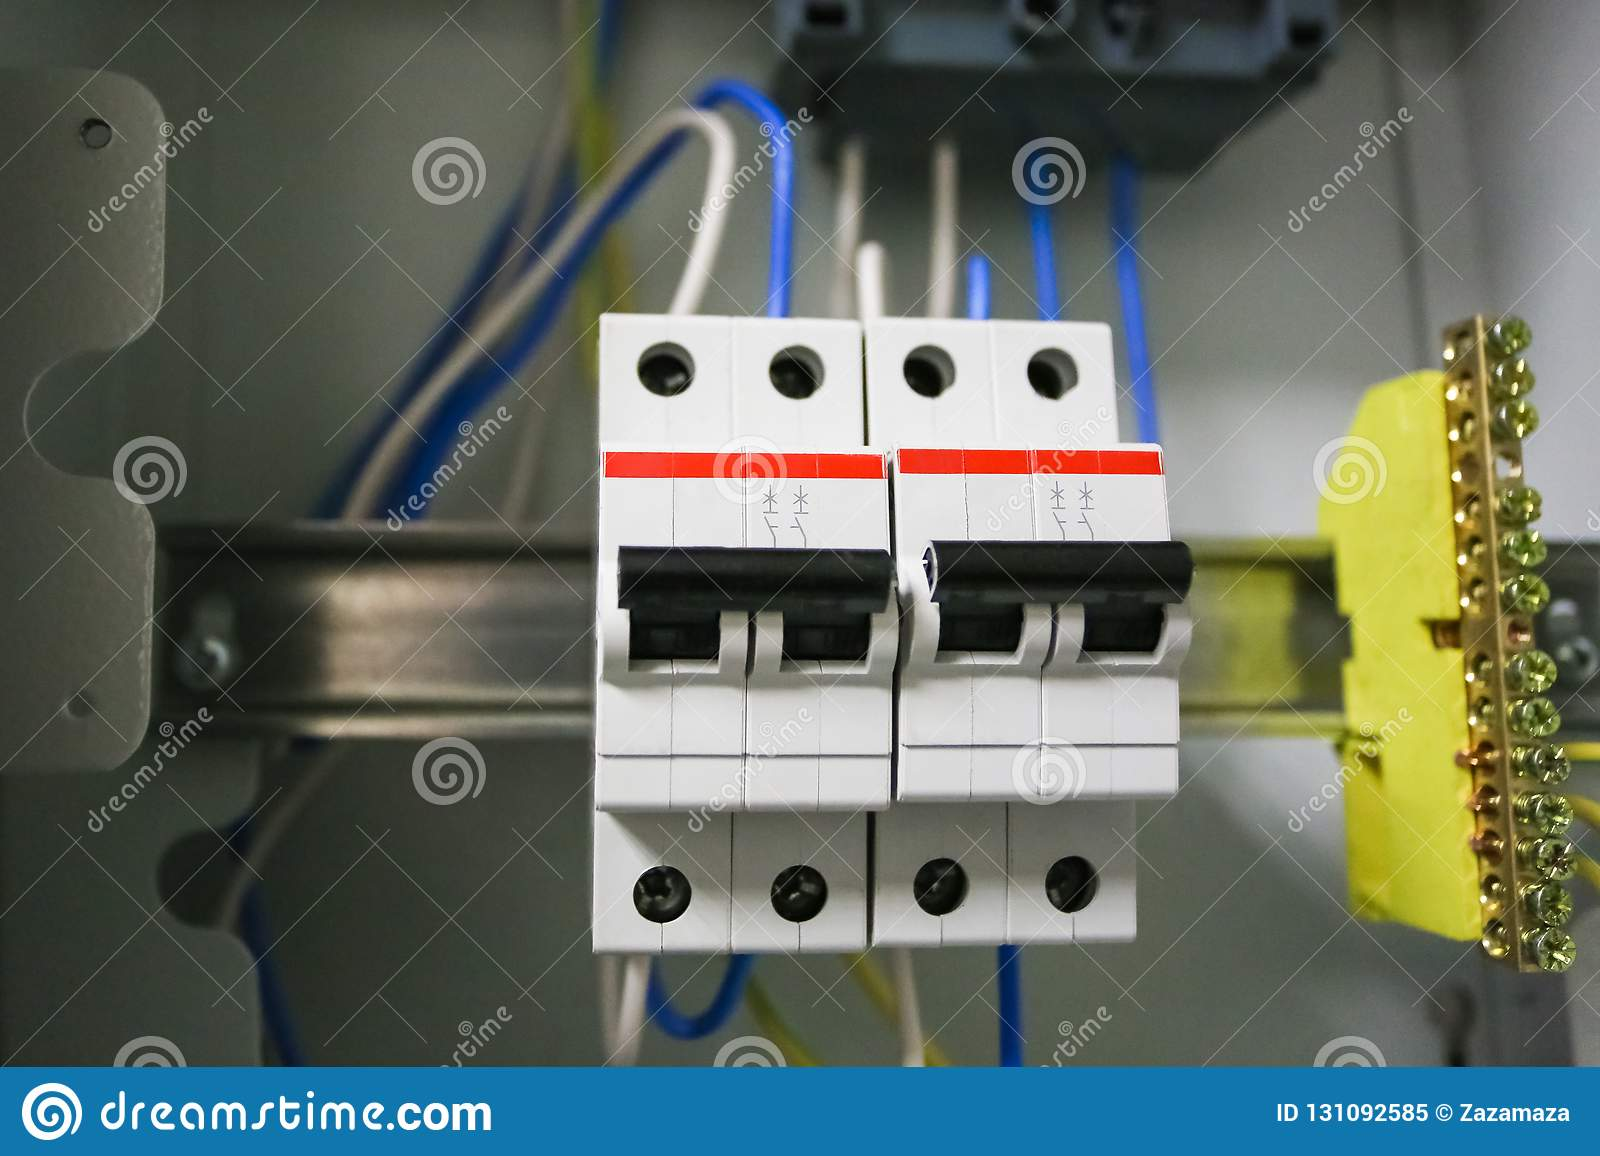 Voltage Switchboard 220 Volt, Electrical Cables With Modern Circuit on circuit breaker box, circuit board wiring, circuit breaker wiring diagram,